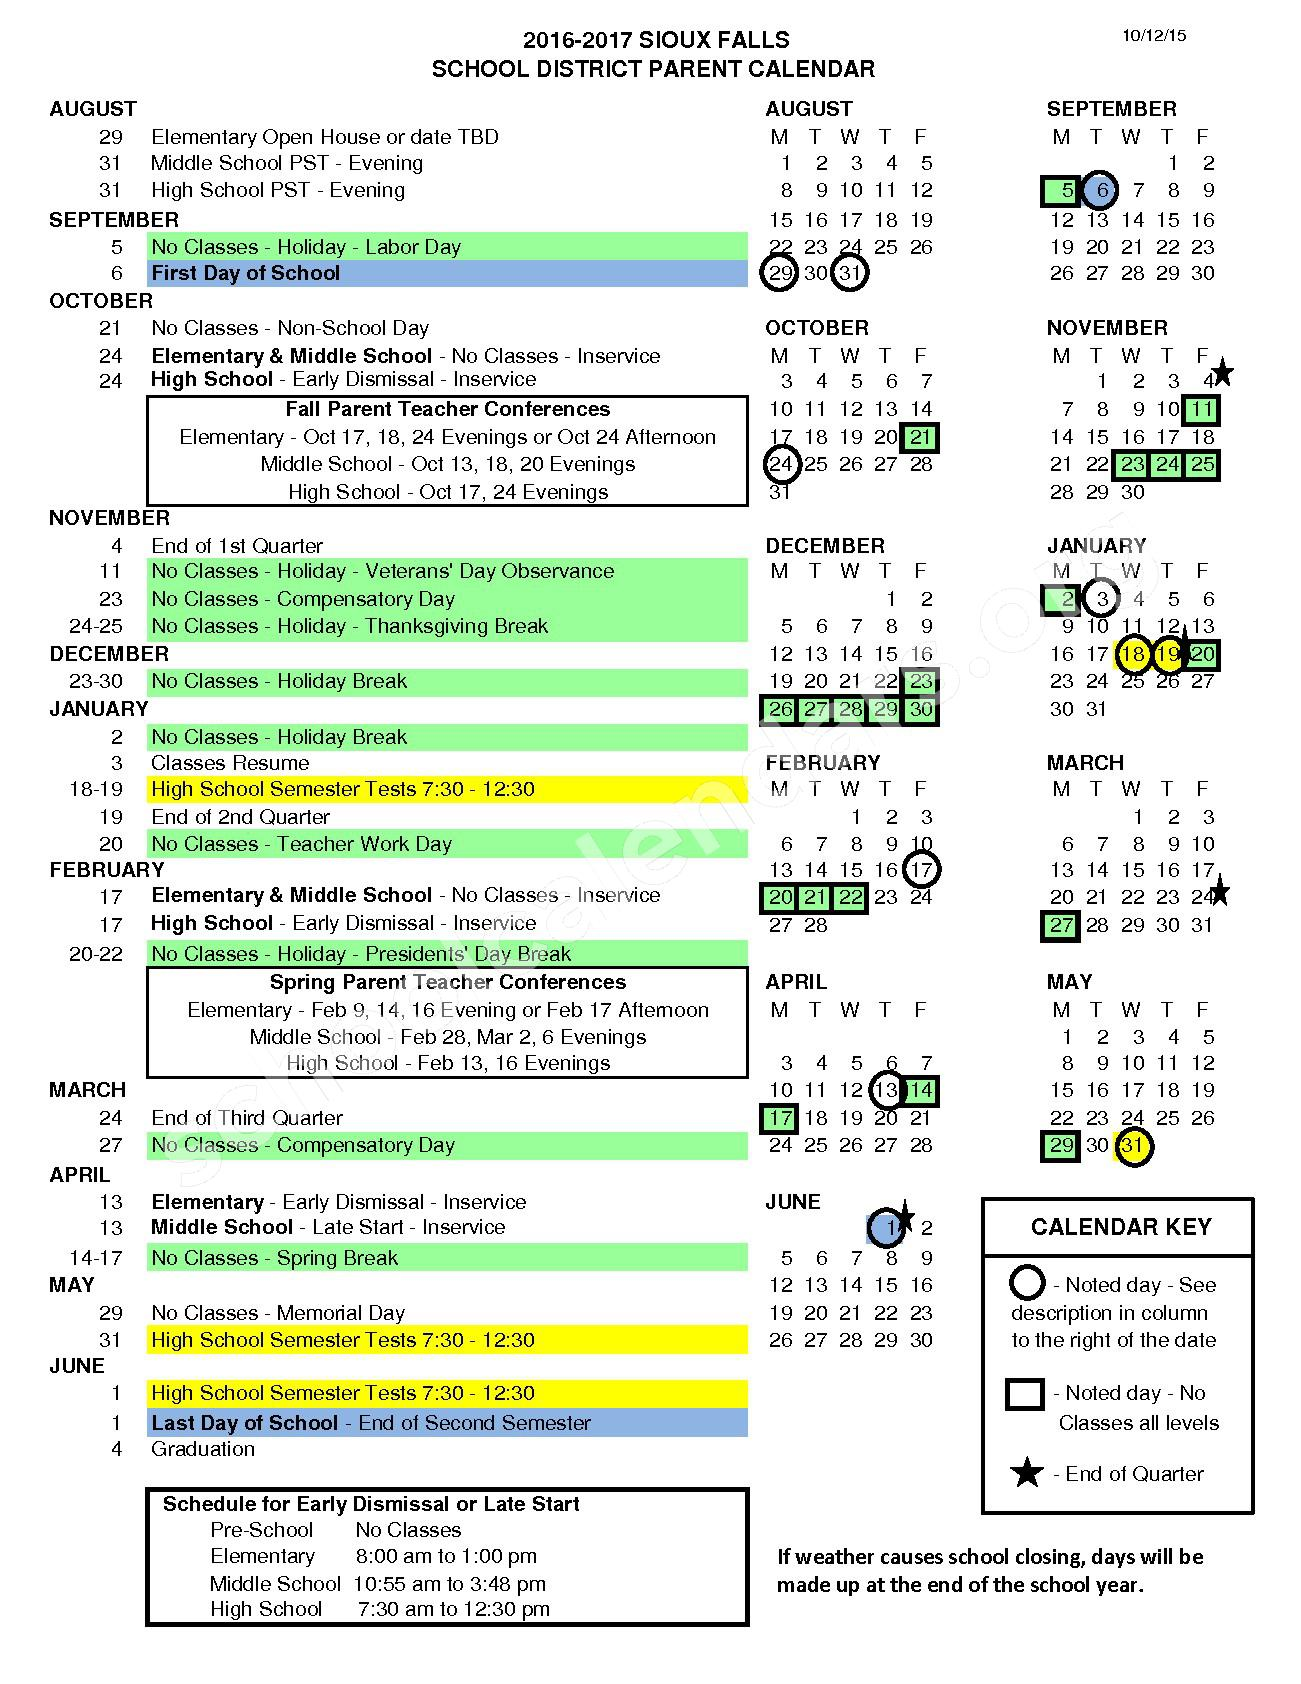 2016 - 2017 District Calendar – Cleveland Elementary – page 1